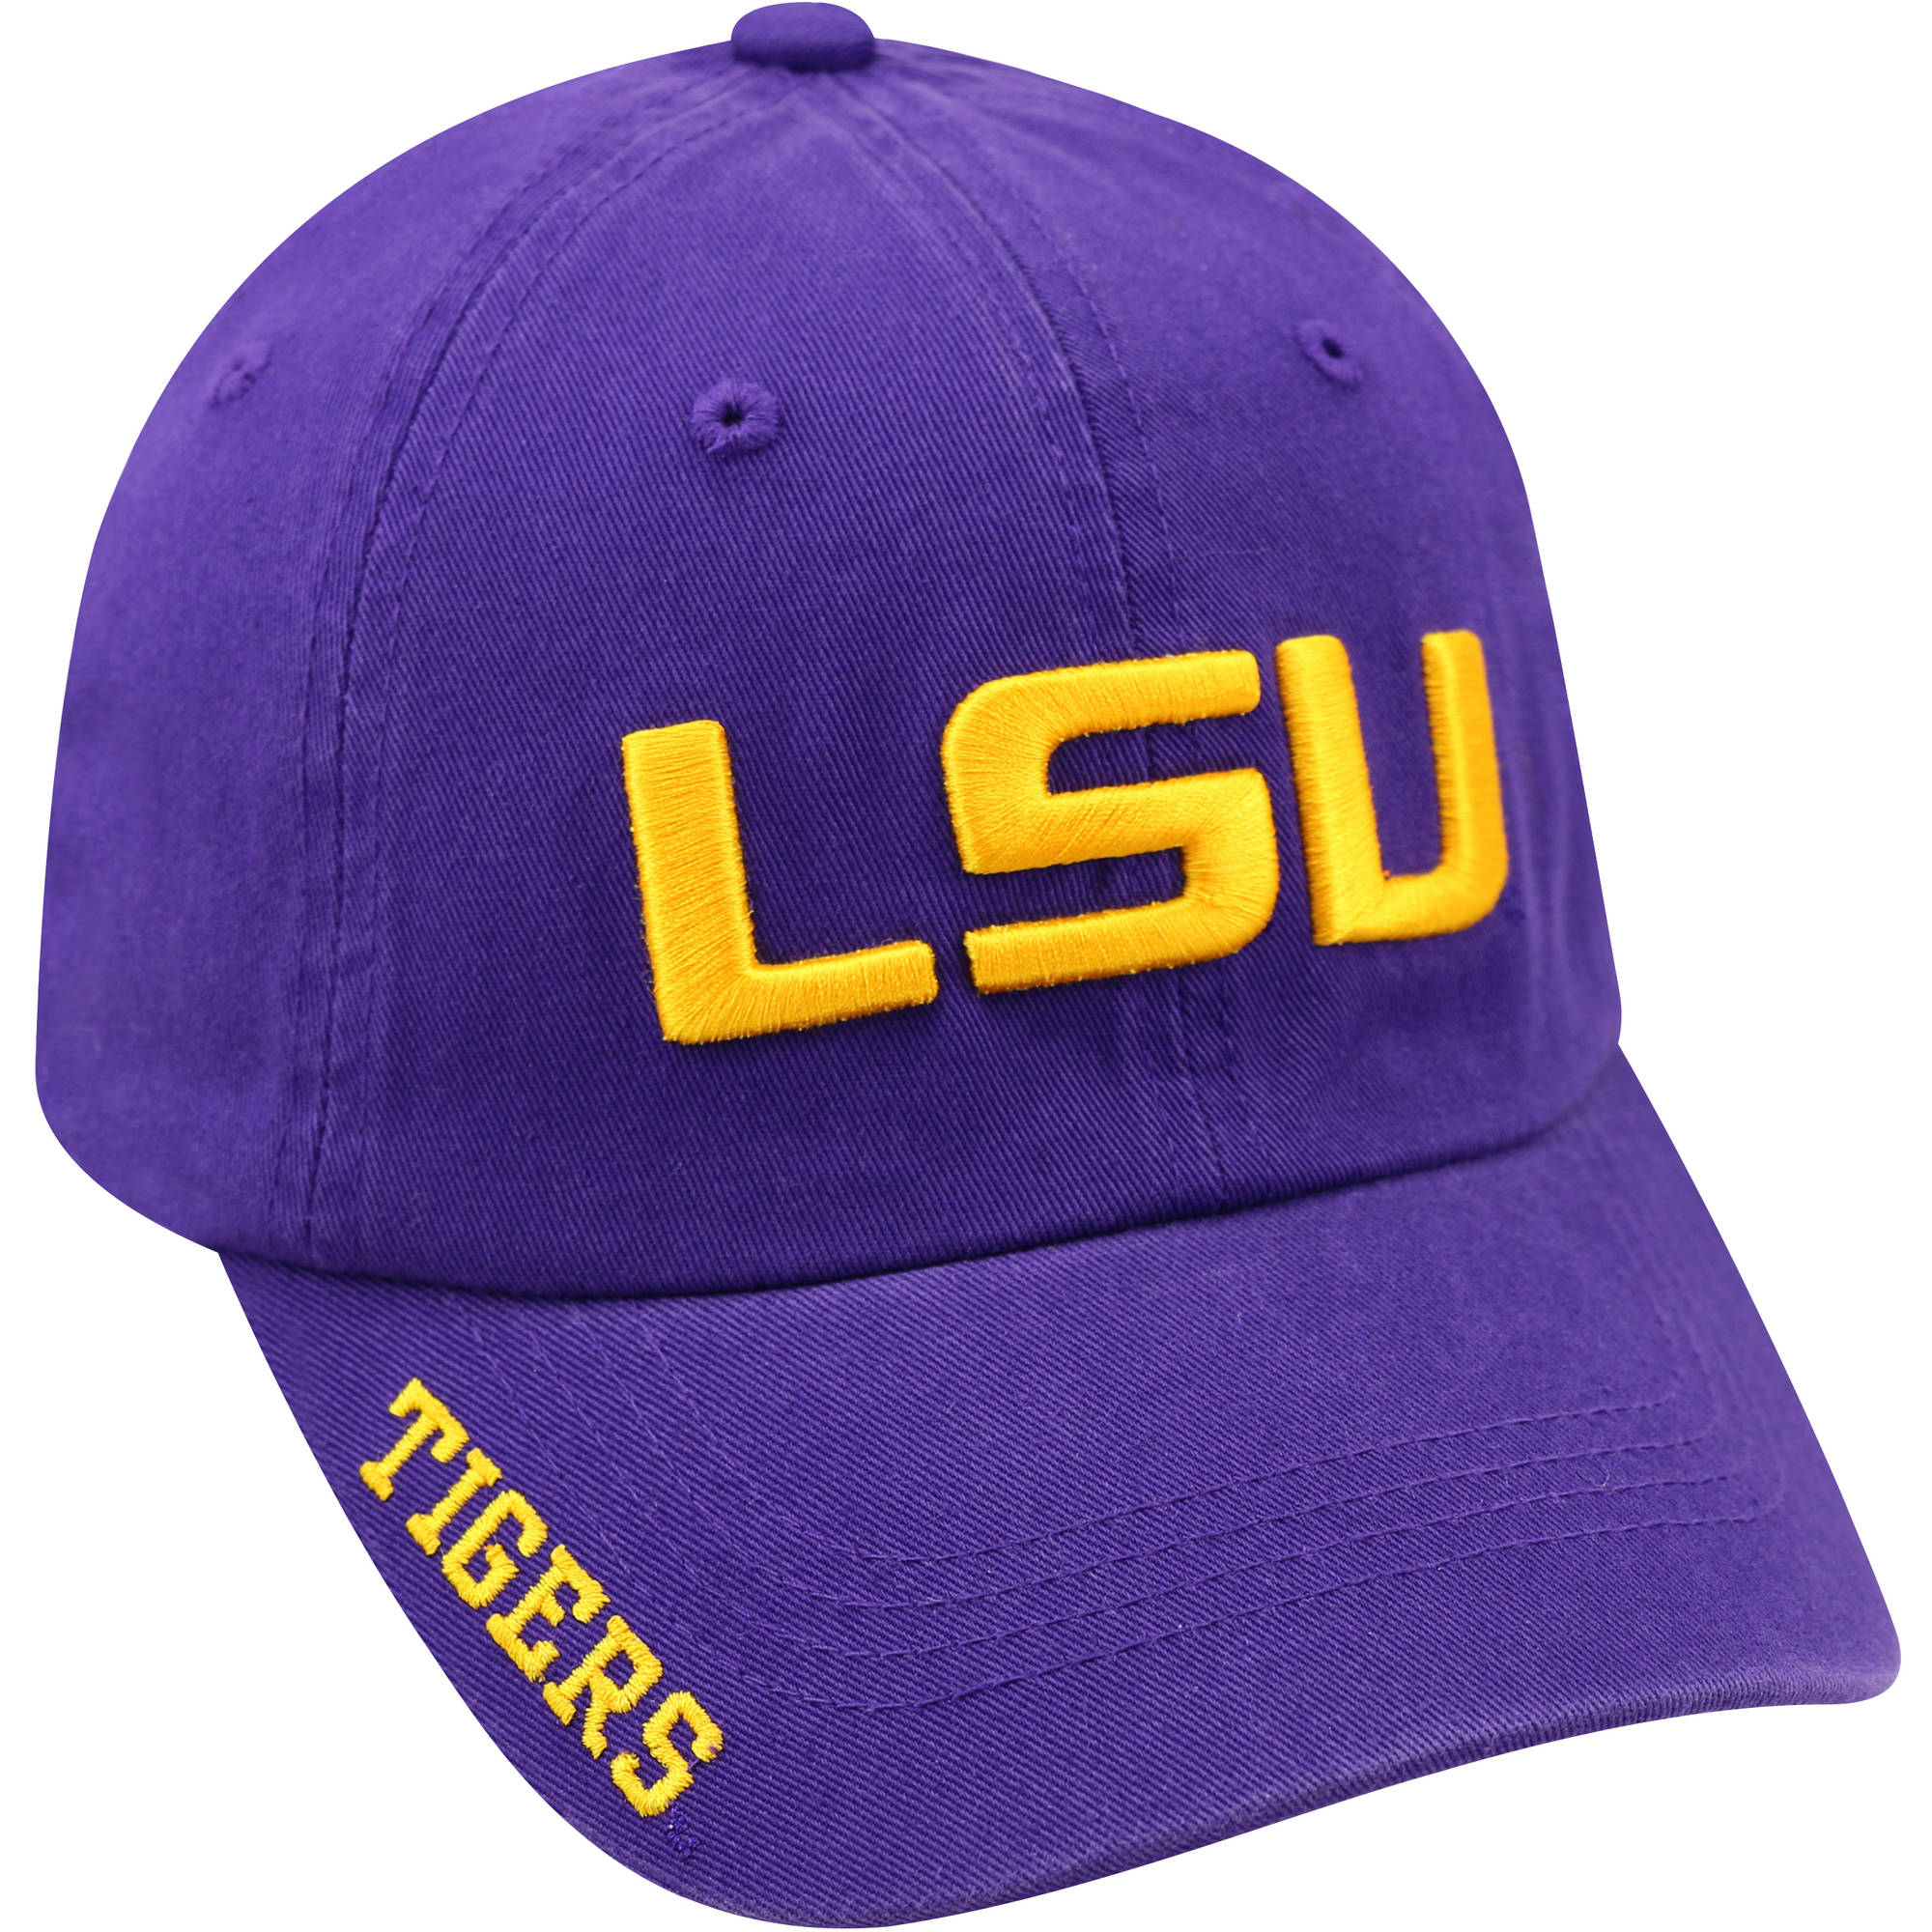 Russell NCAA Men's LSU Tigers Home Cap